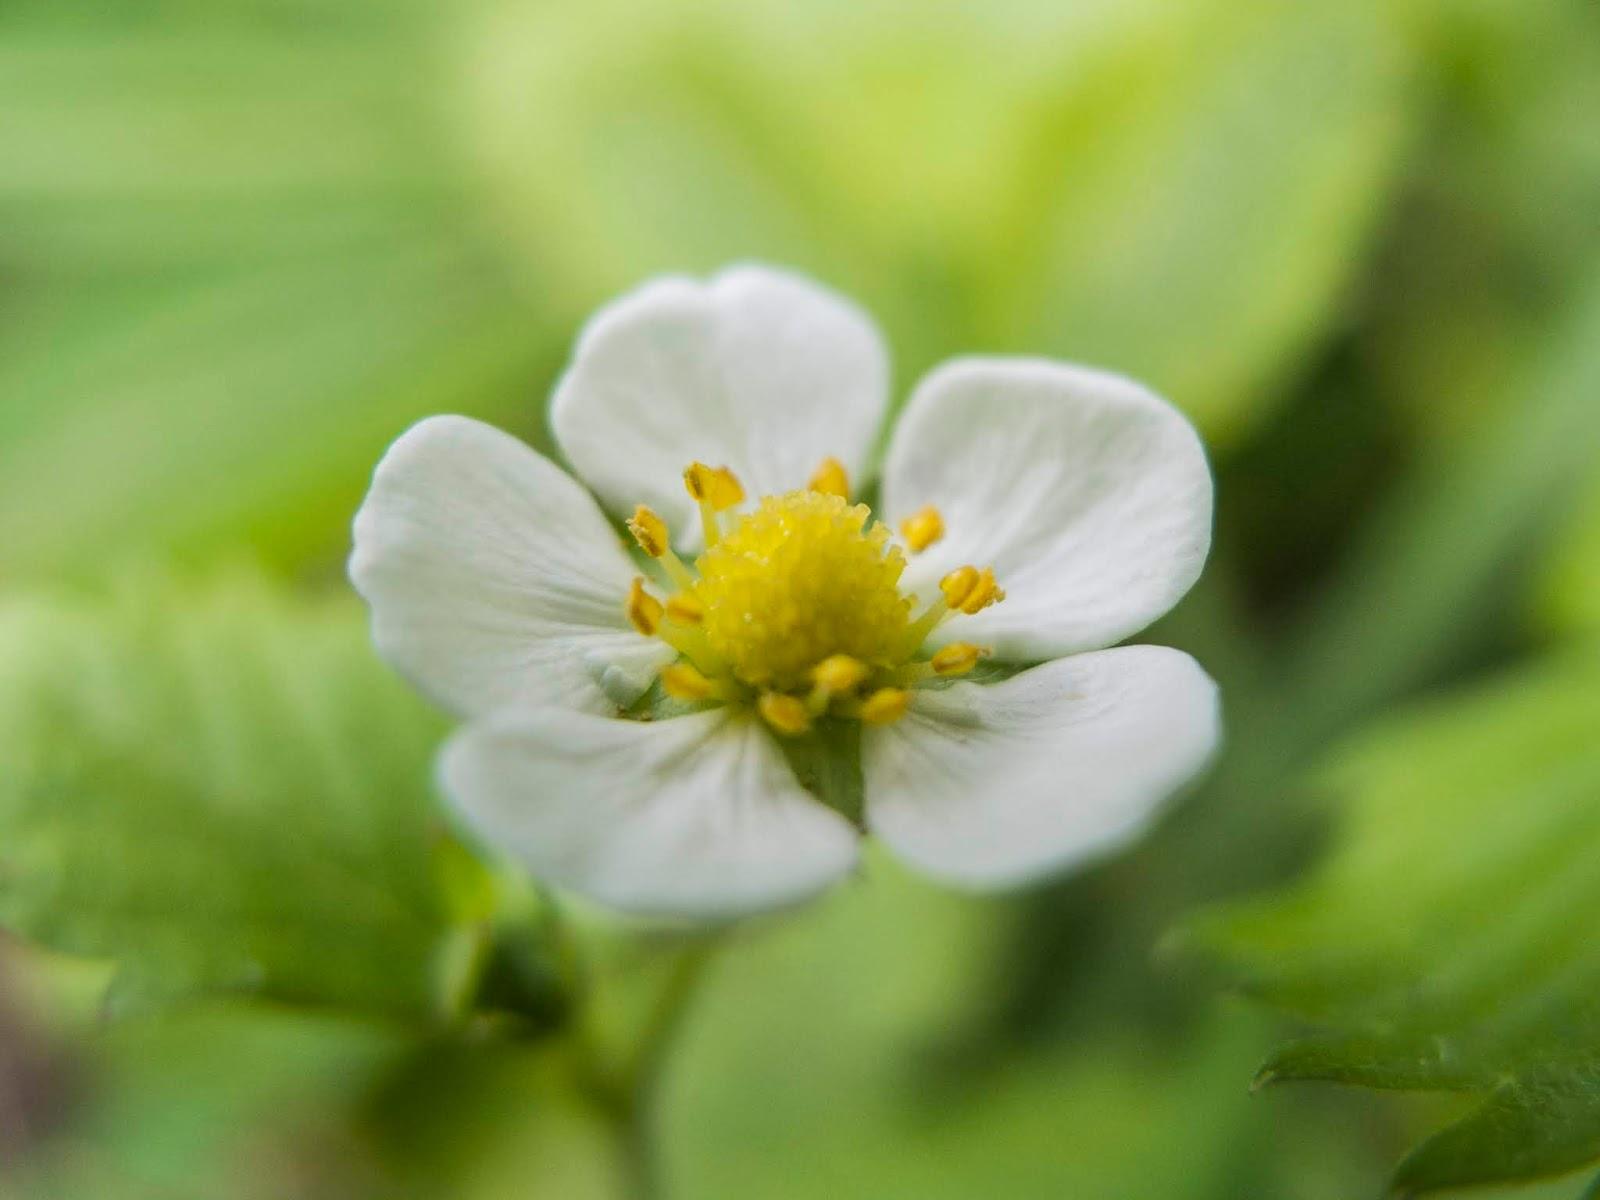 A macro of a Strawberry flower with five white petals and a yellow centre.